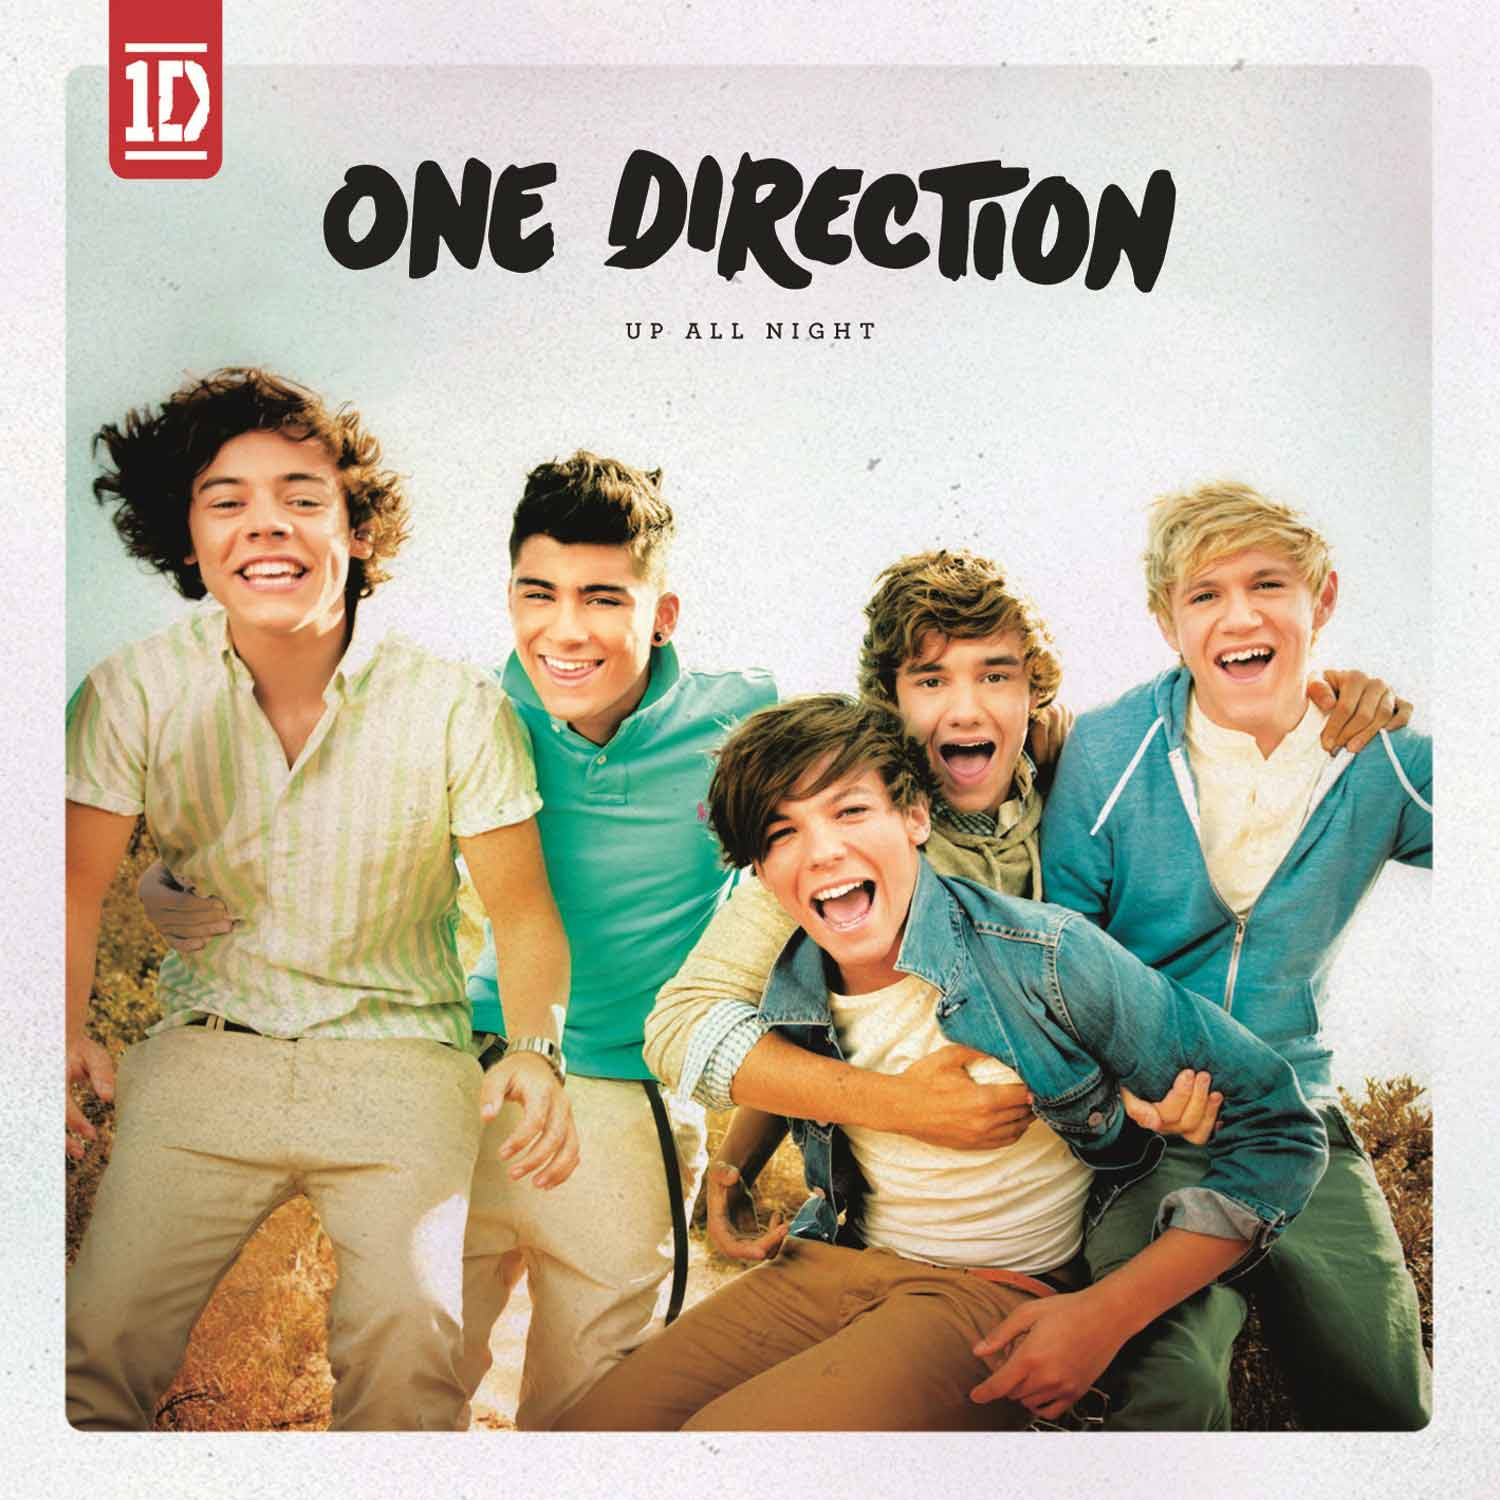 one direction photo album Photo